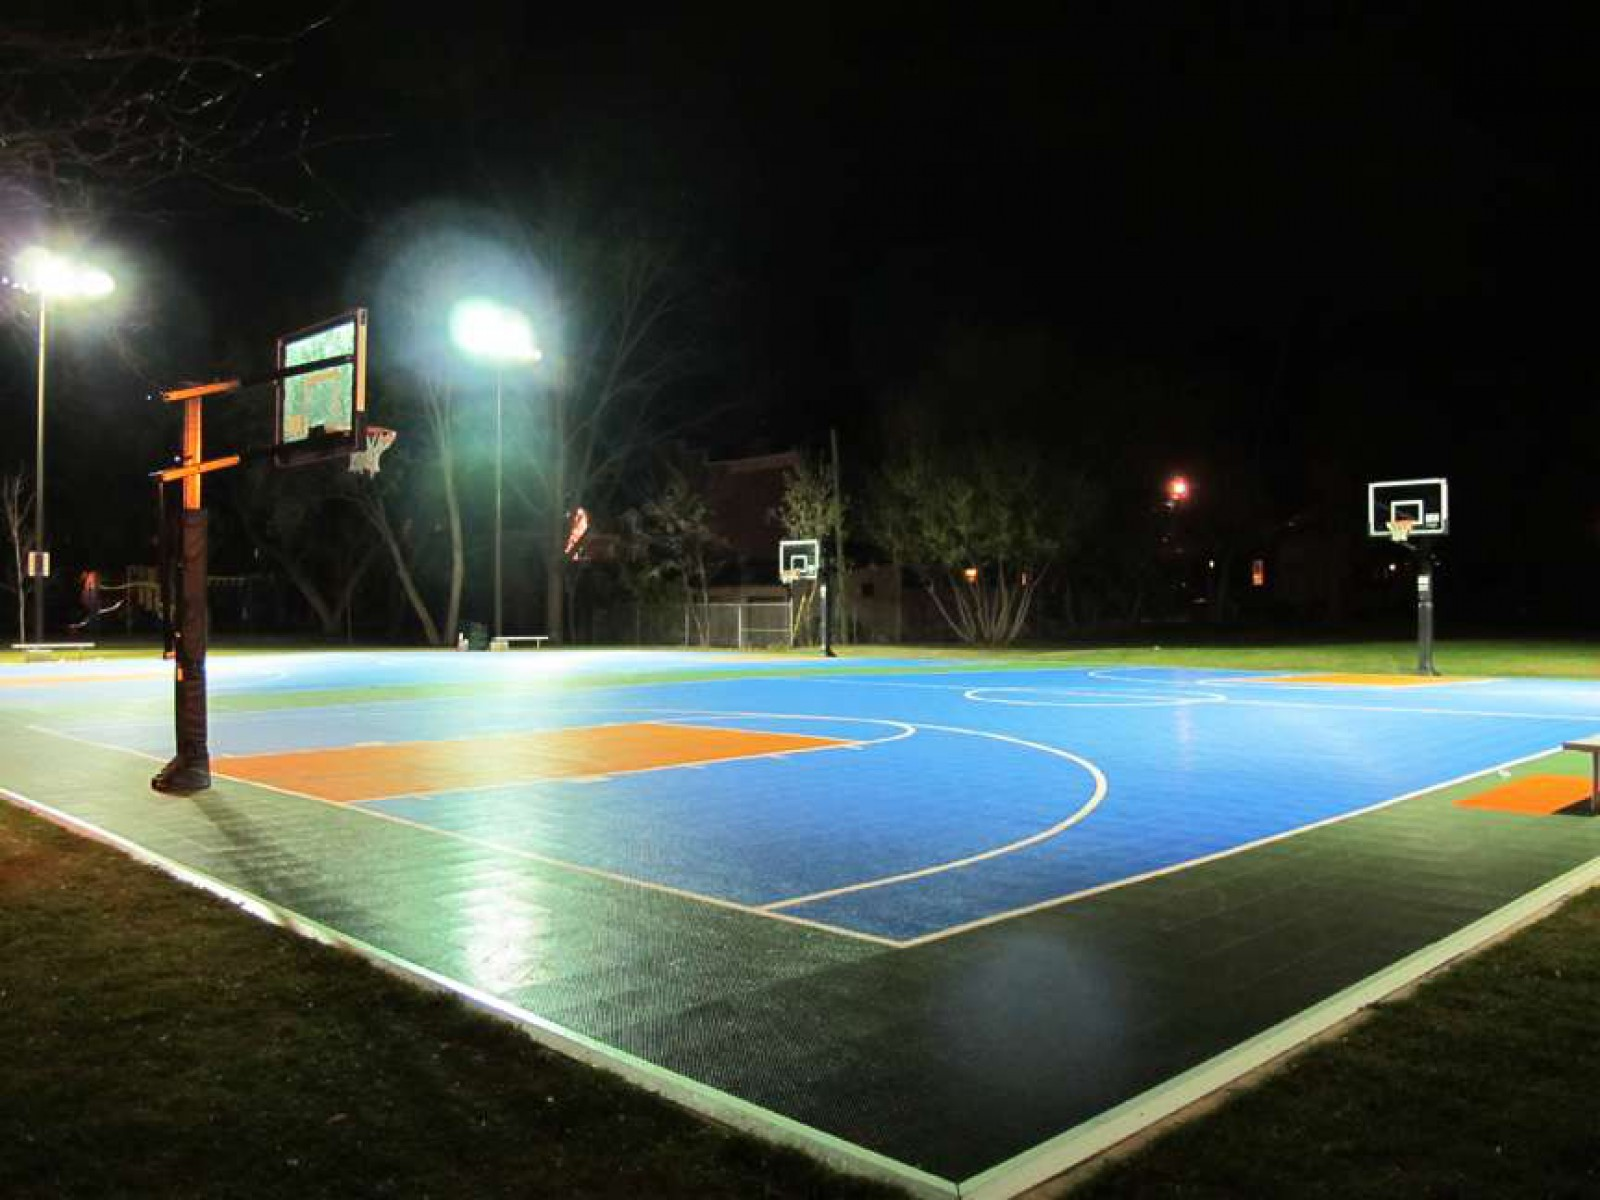 Simcoe/Bethune Basketball Courts, Peterborough, Canada